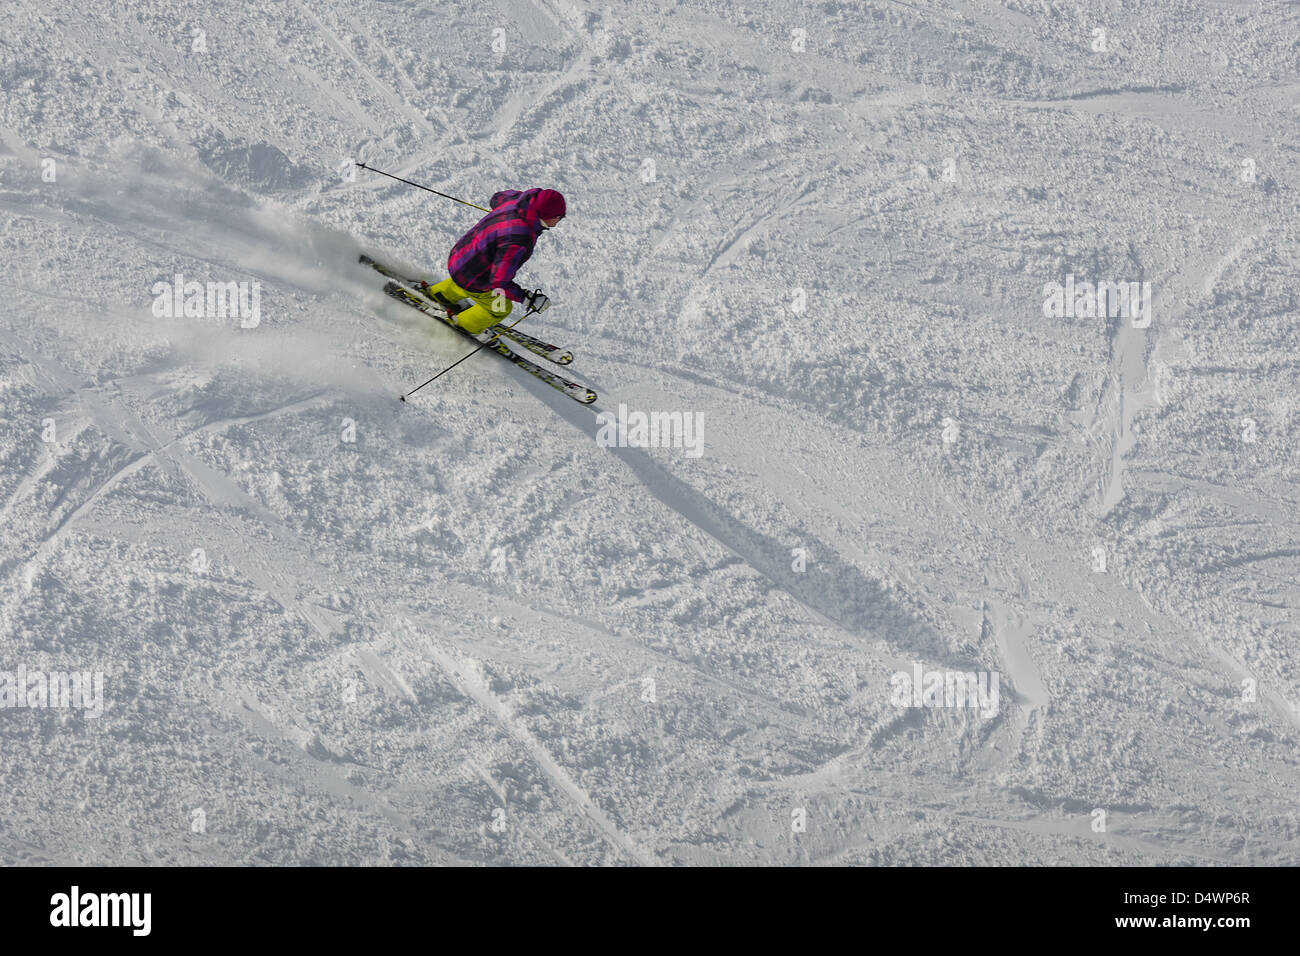 Mountain skier going down from a mountain slope - Stock Image